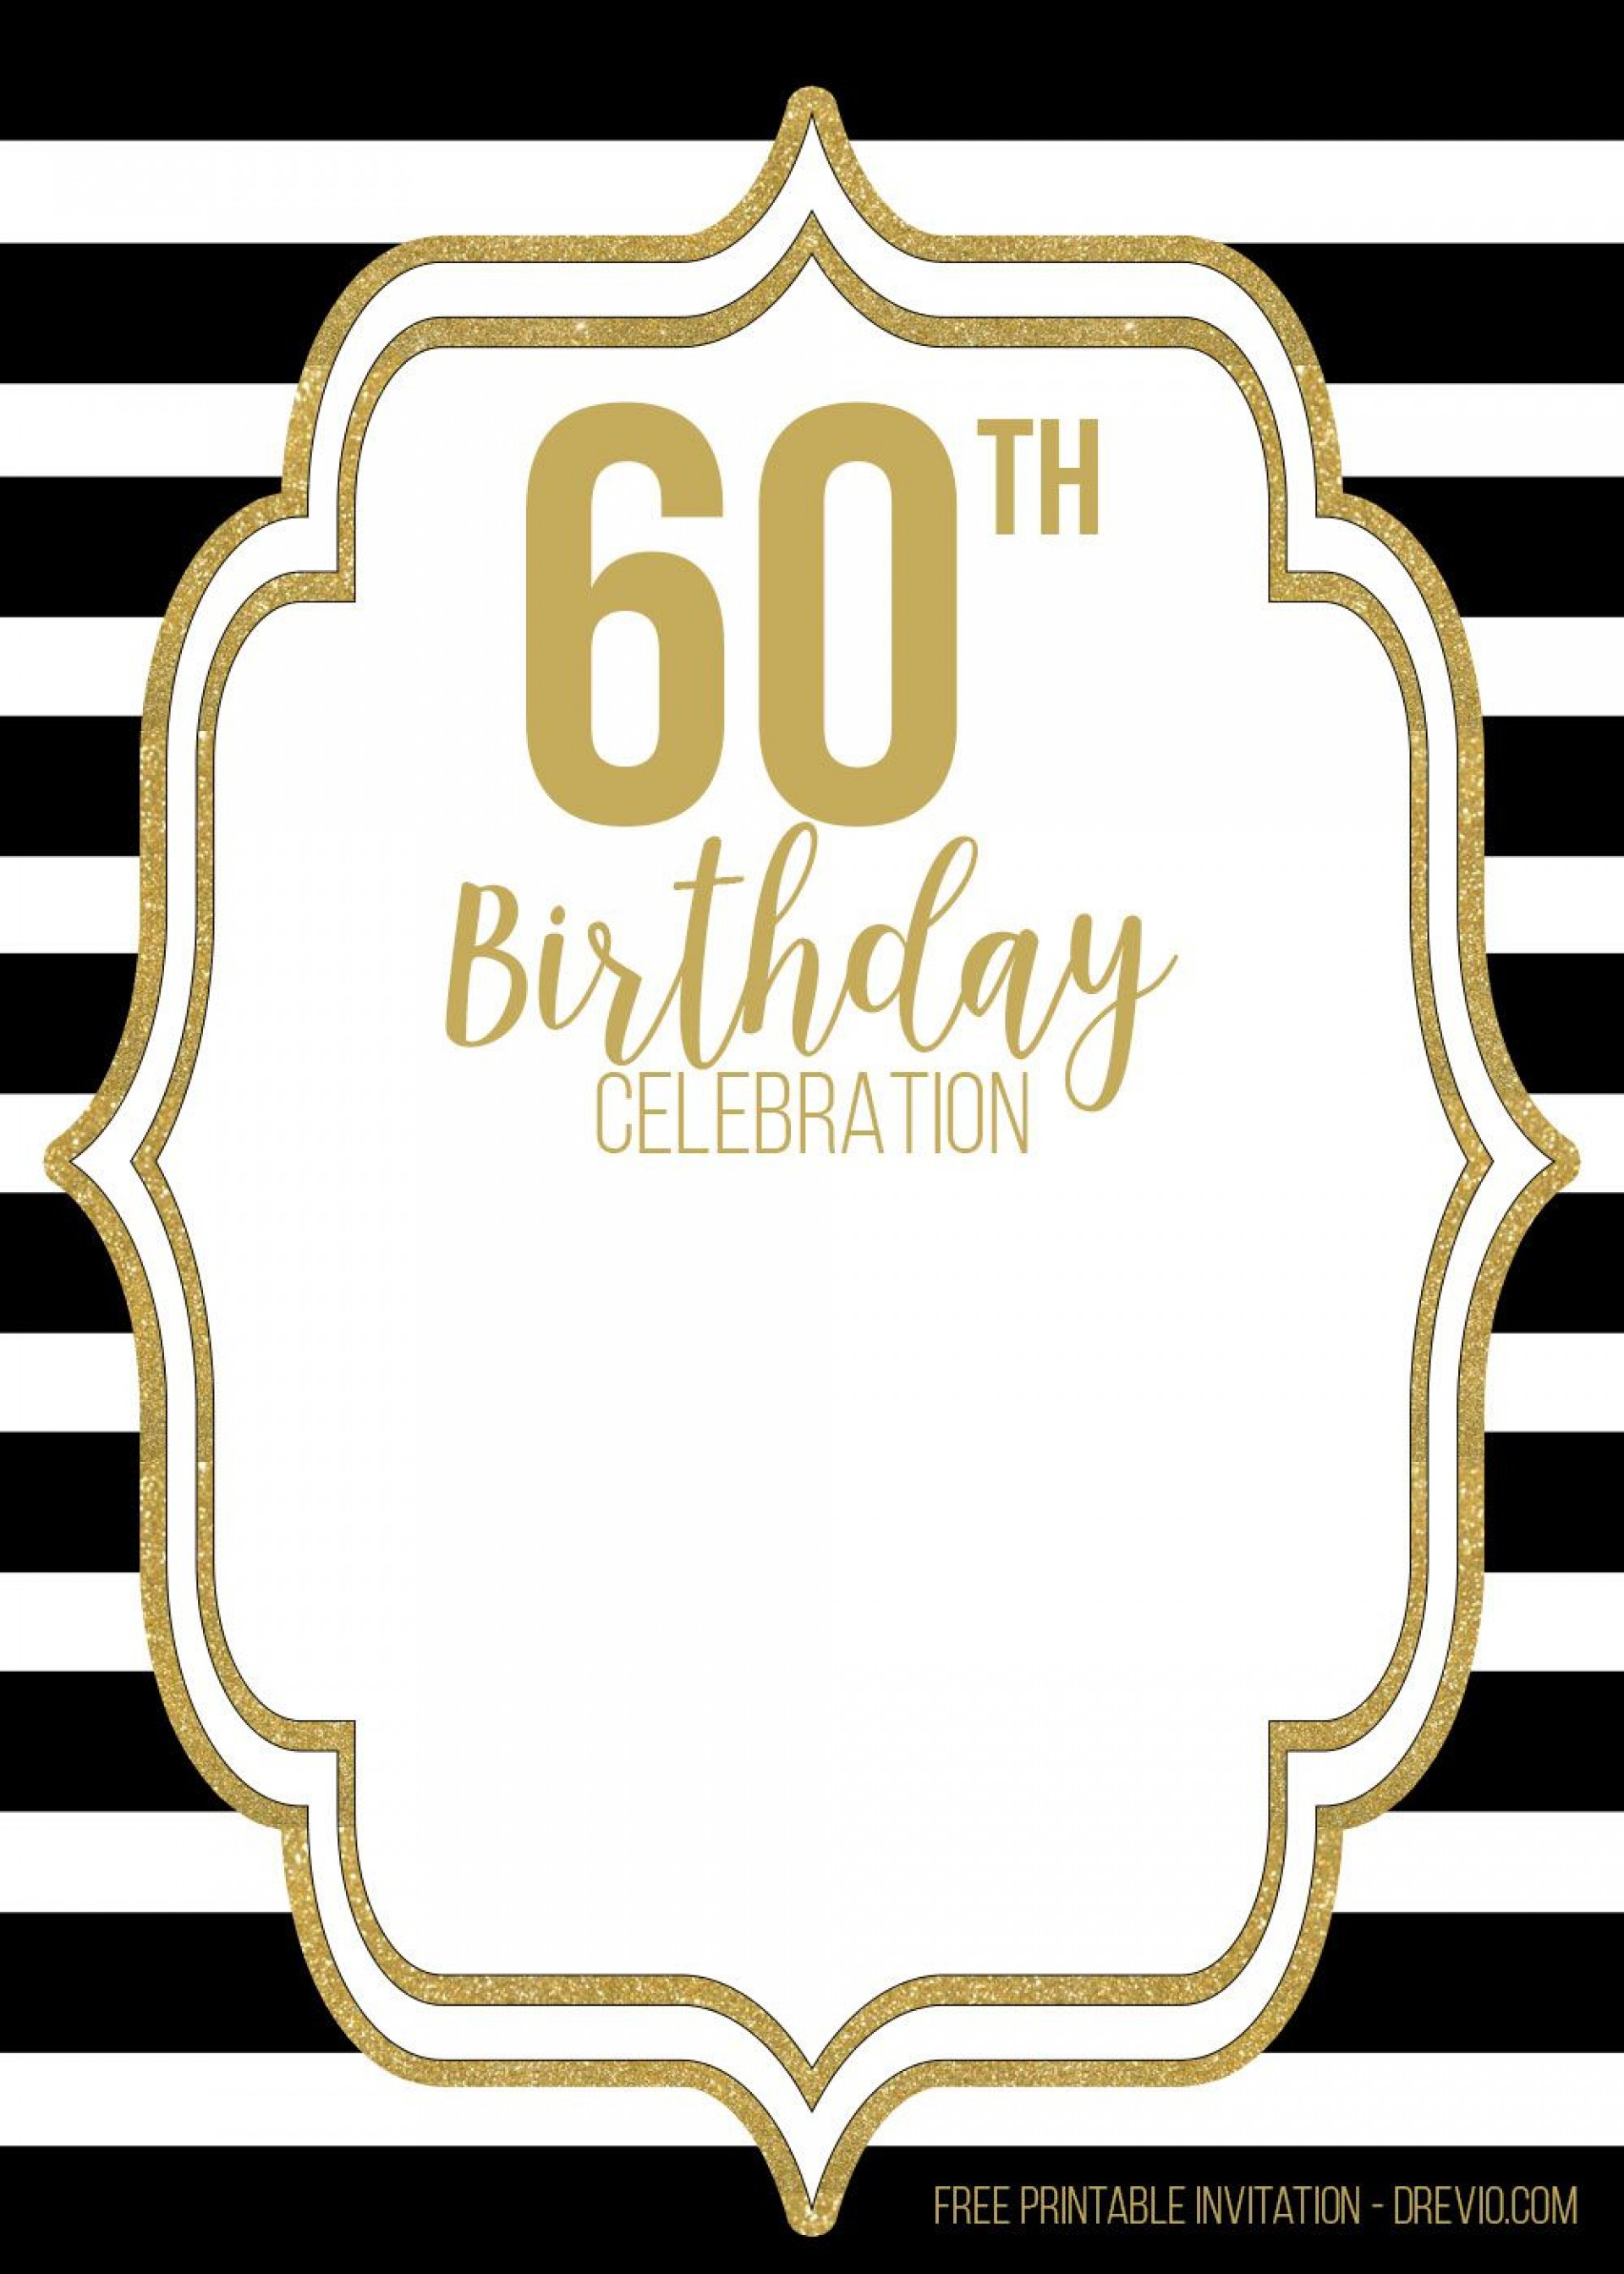 009 Sensational 60th Birthday Invite Template Picture  Templates Funny Invitation Free Party1920